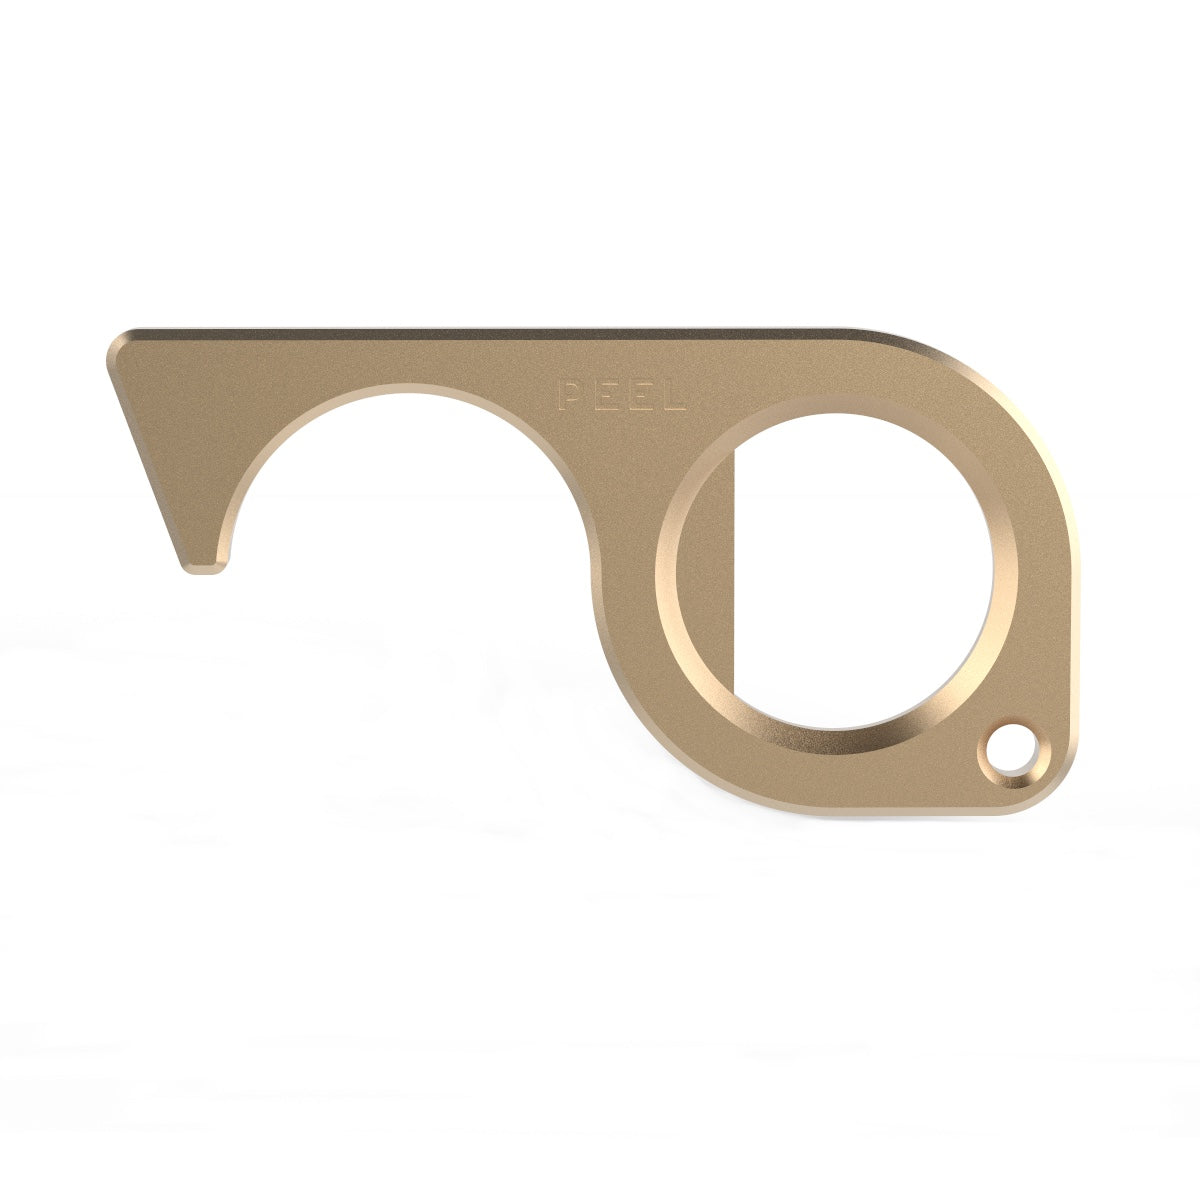 The Brass Keychain Touch Tool